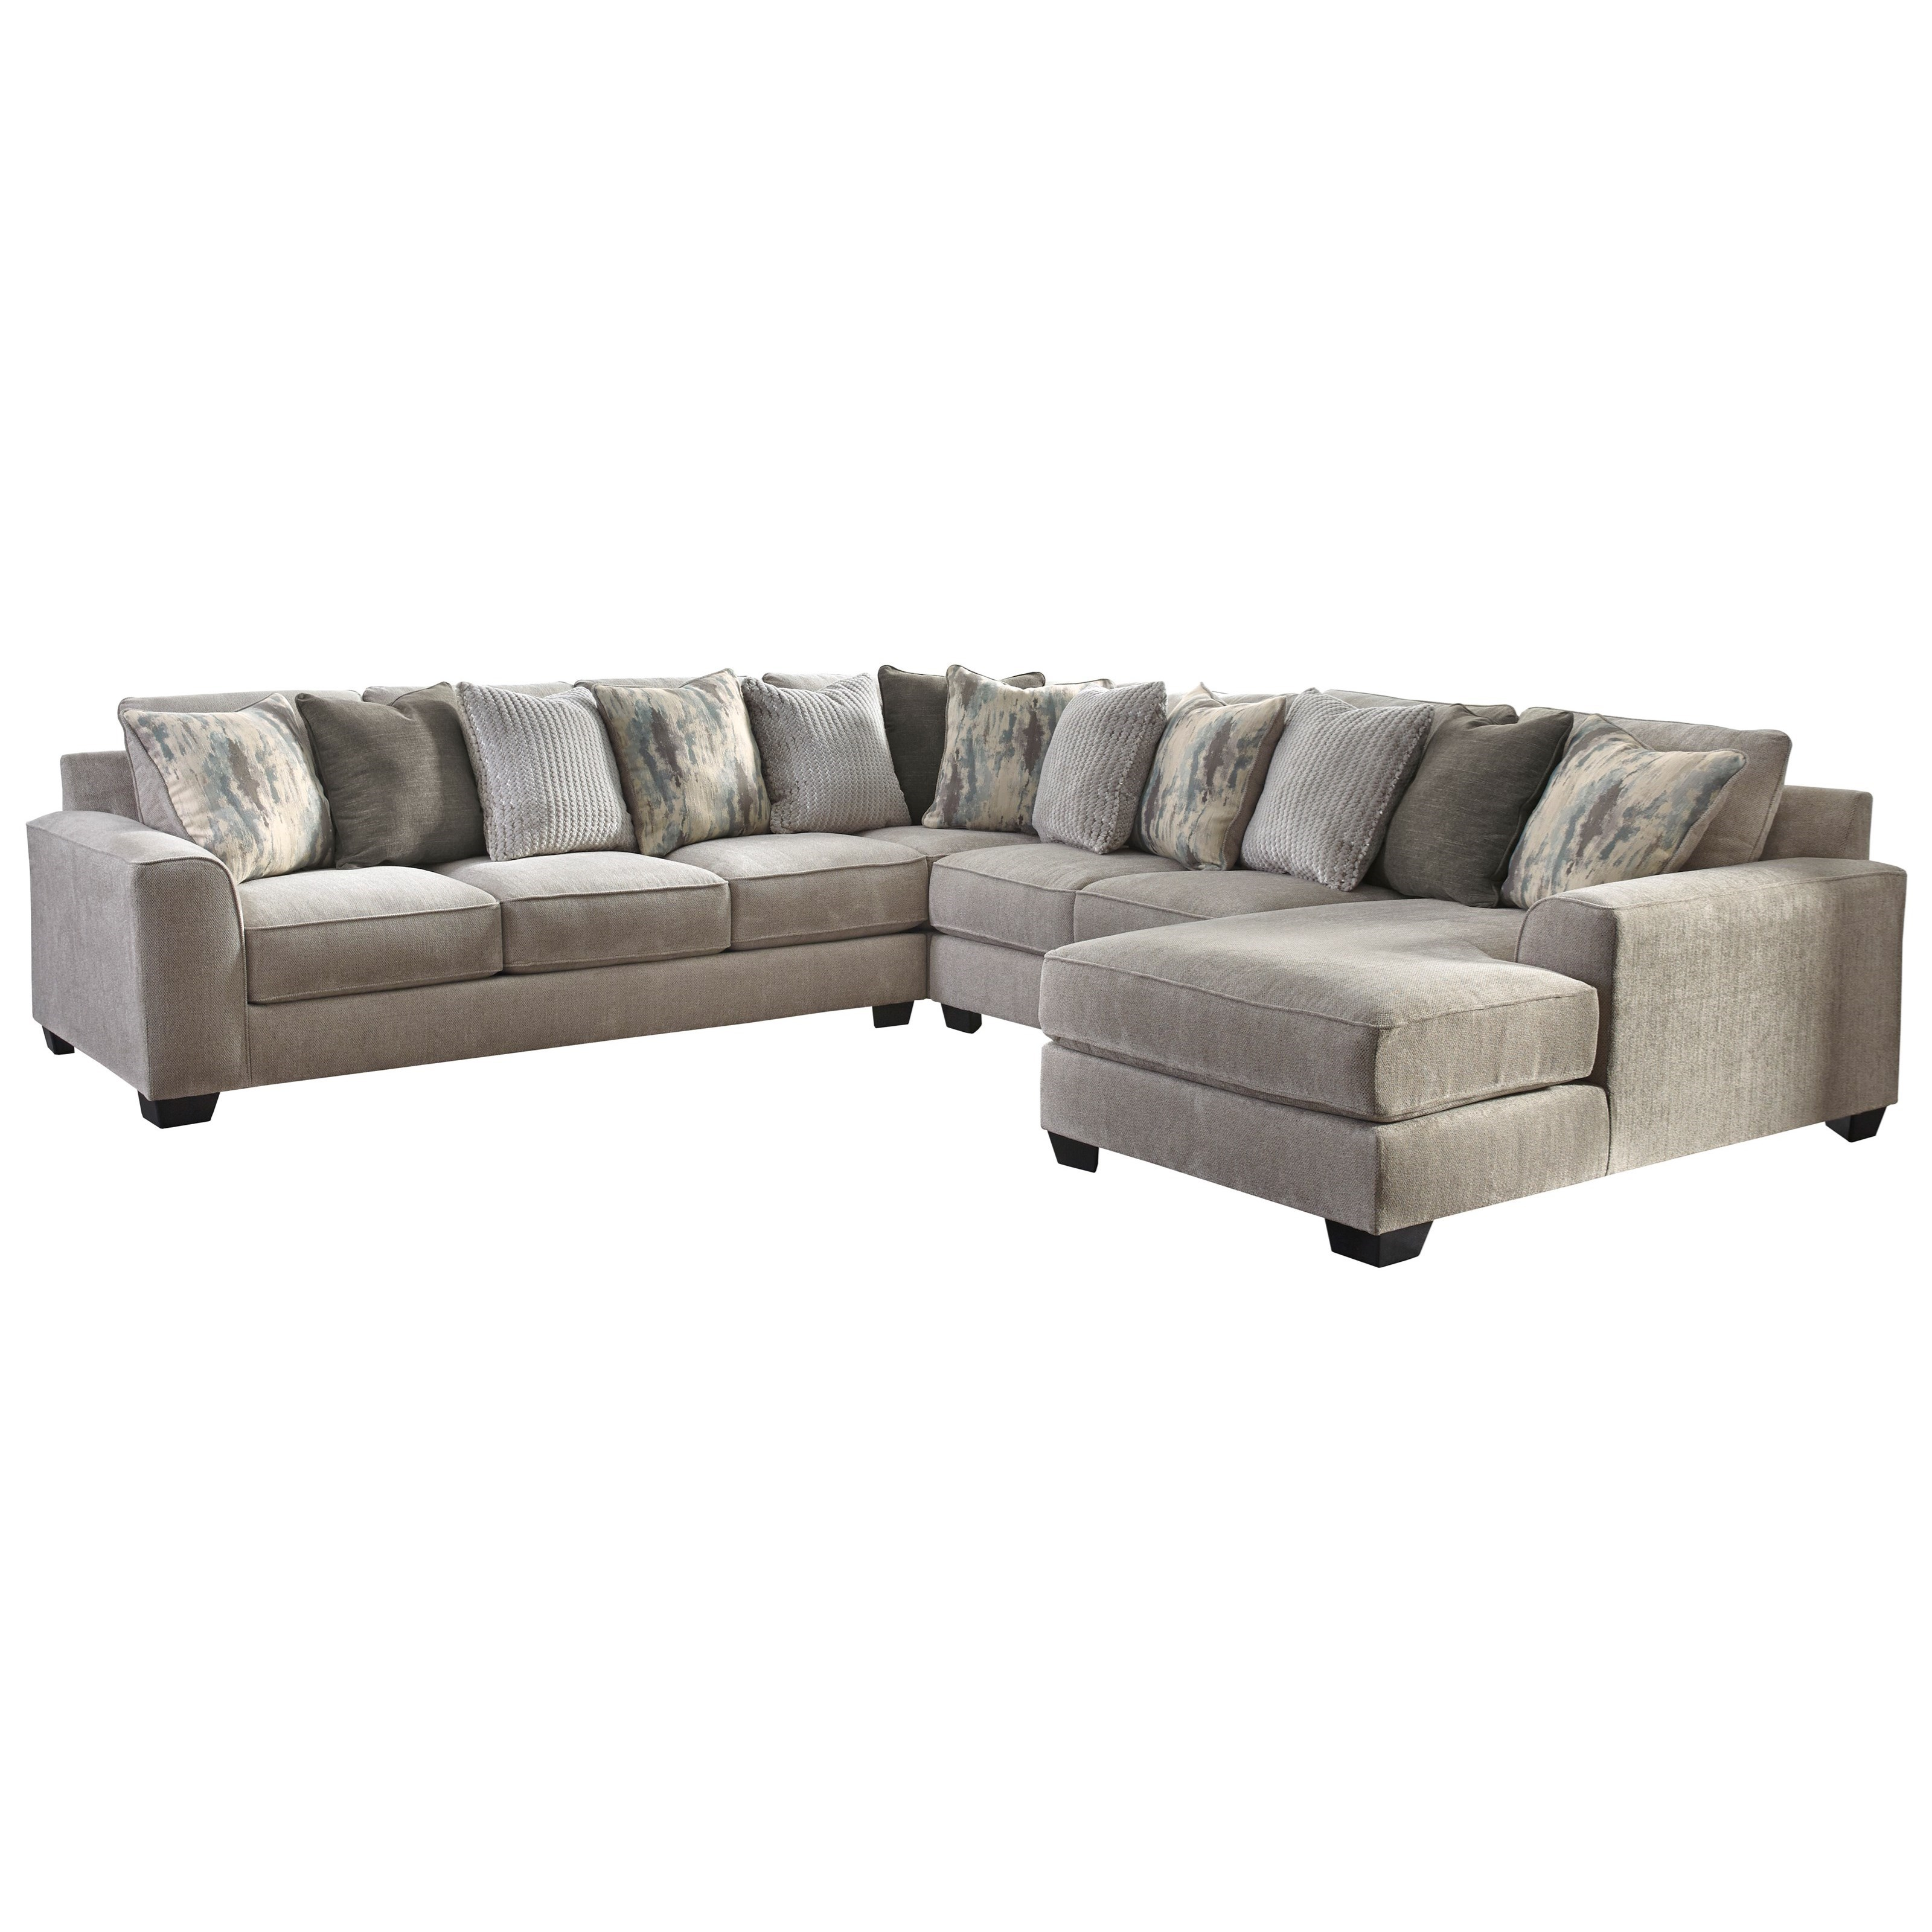 Ardsley 4-Piece Sectional with Right Chaise by Benchcraft at Home Furnishings Direct